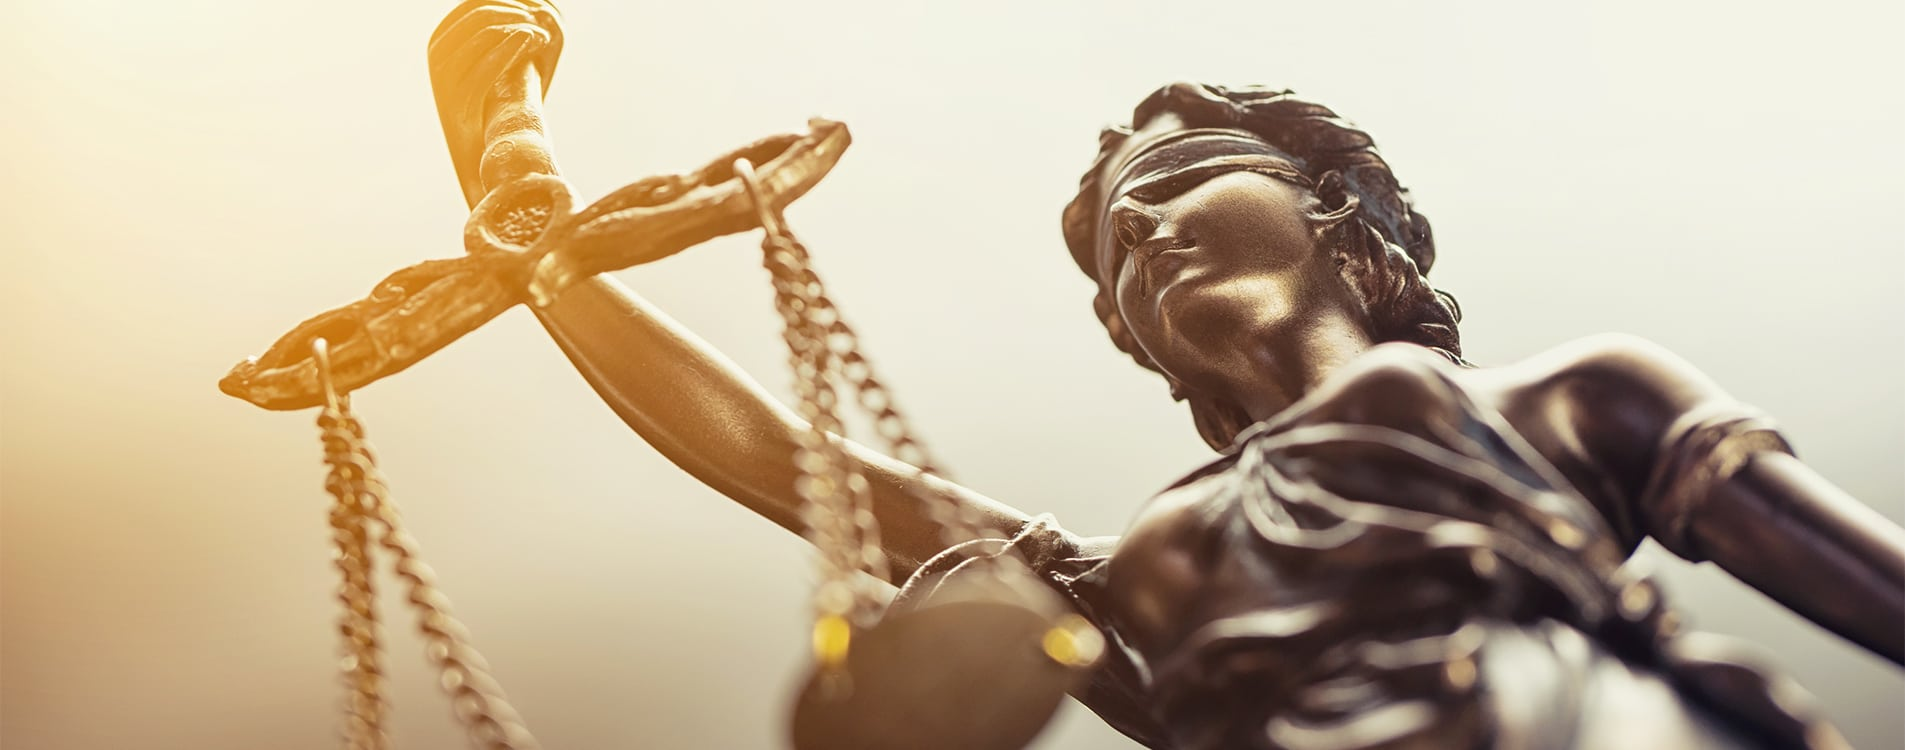 inavocats-statue-justice